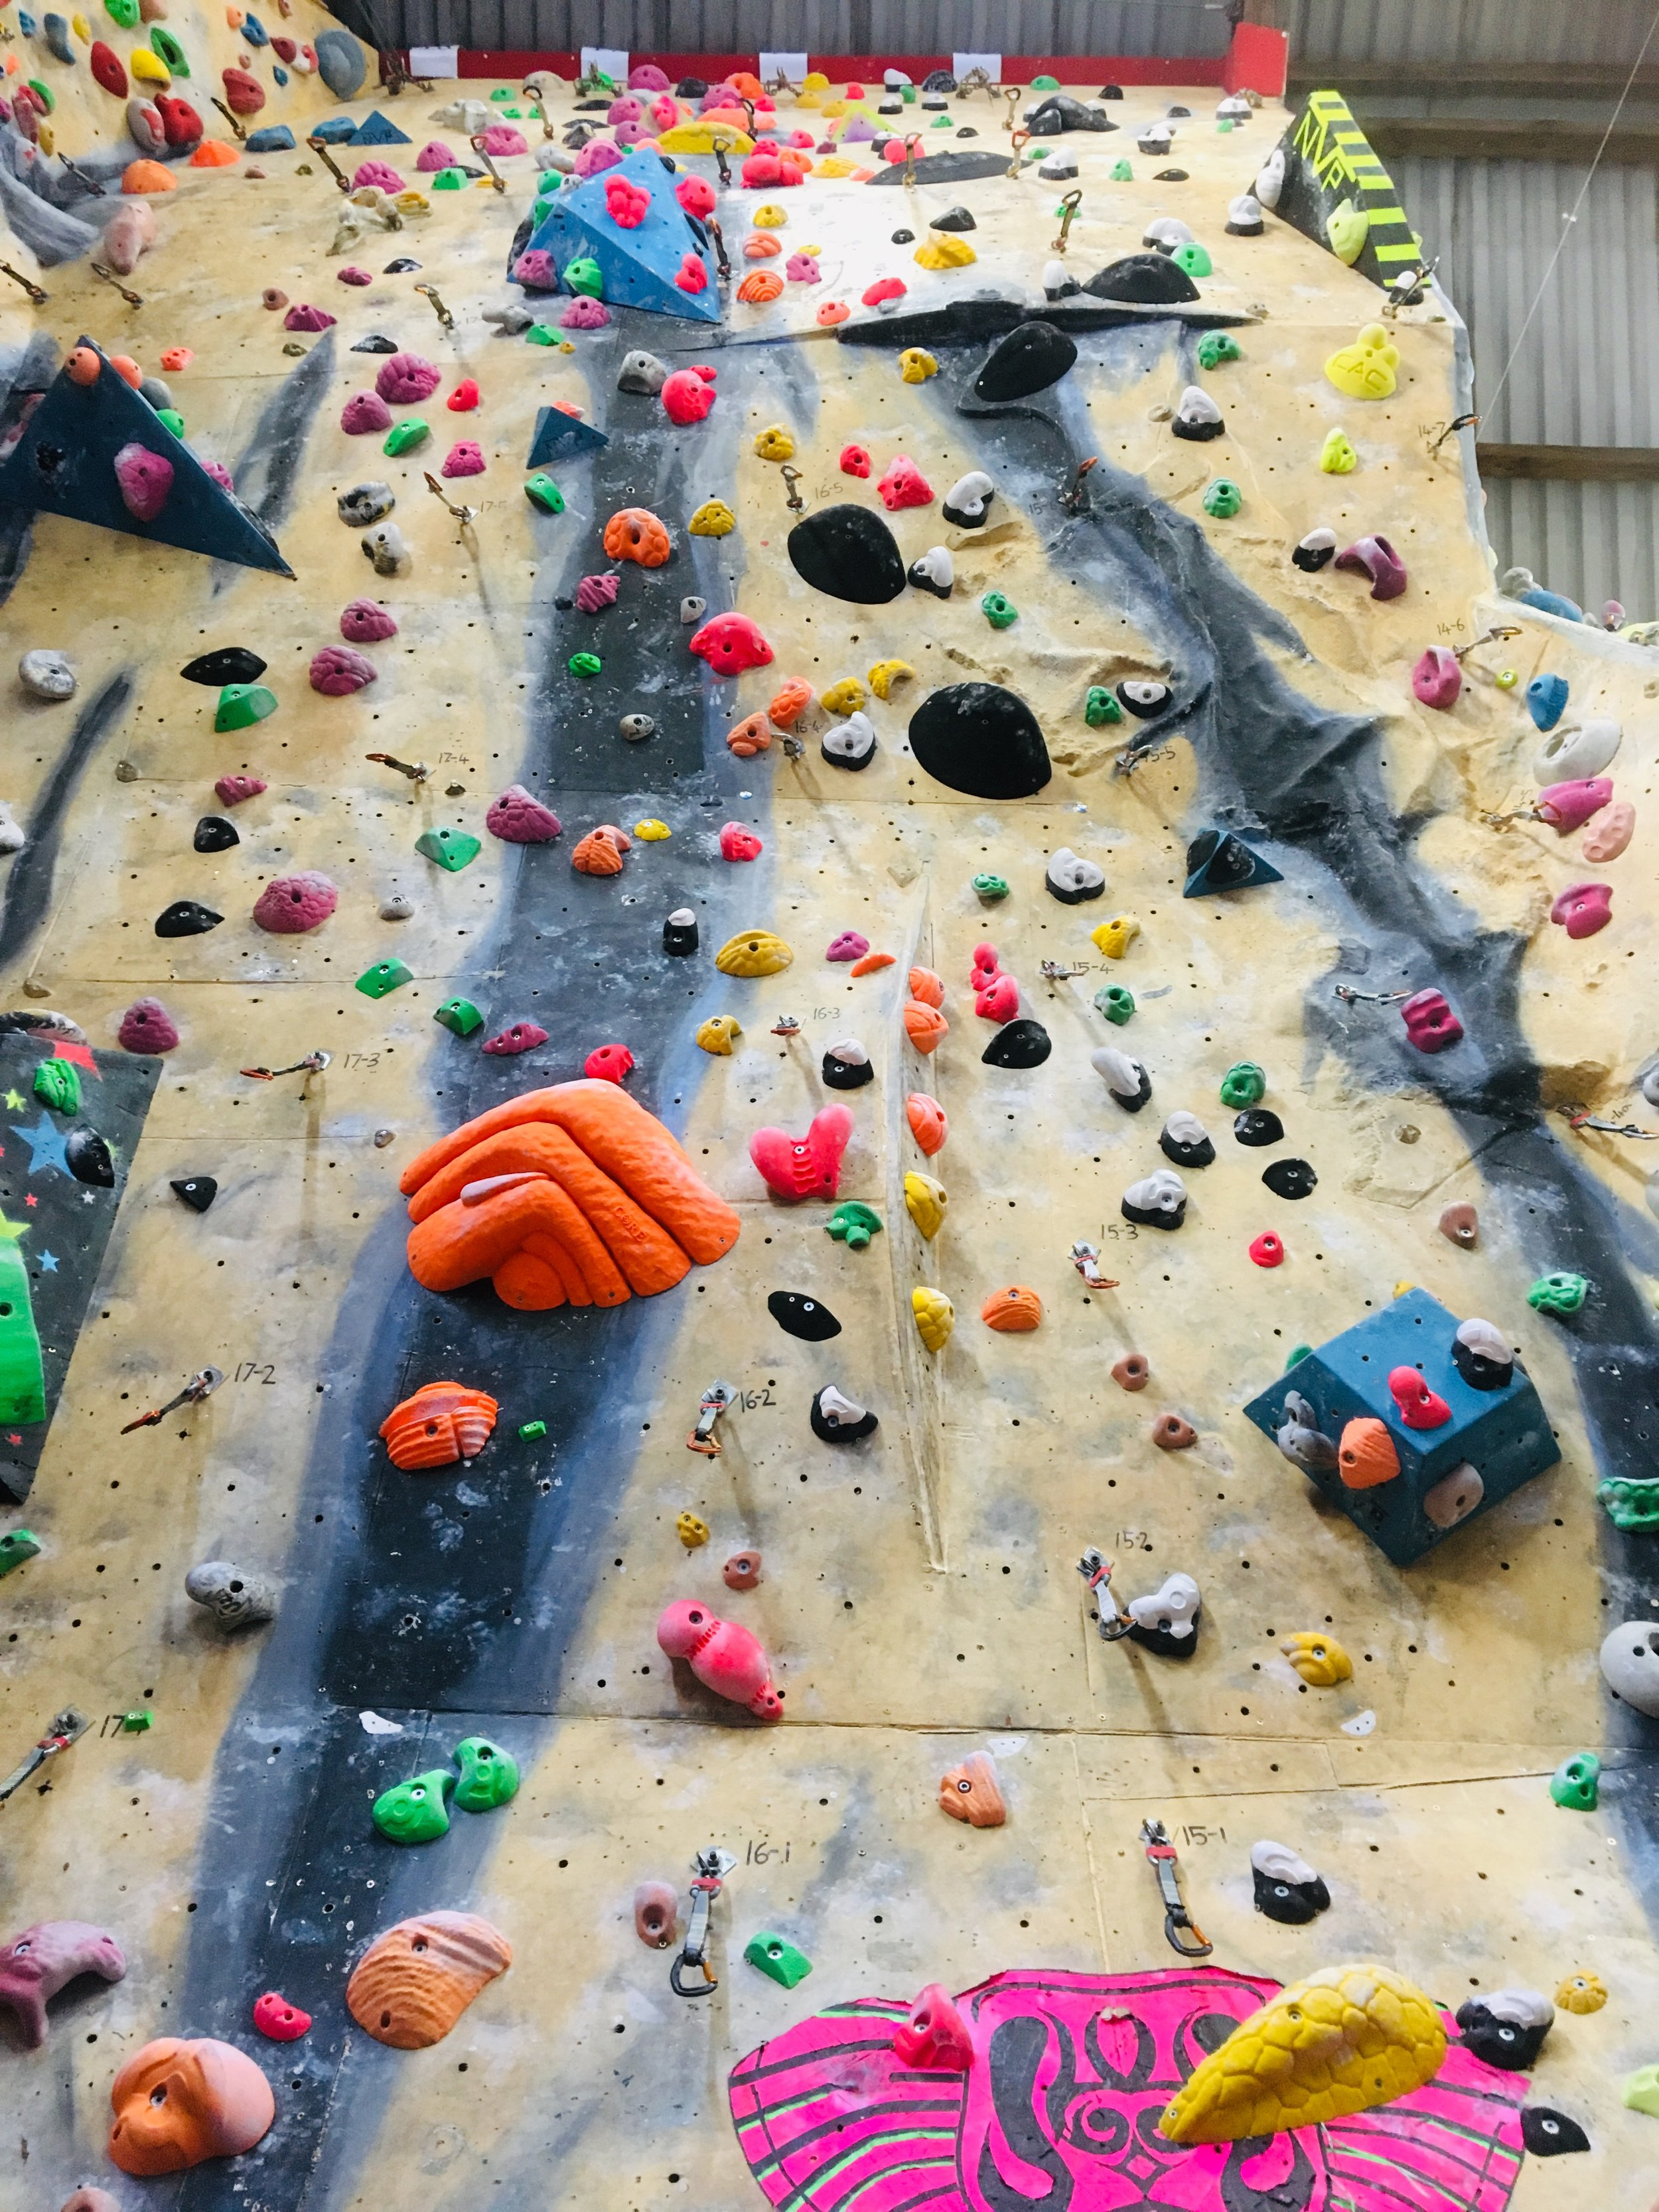 Hangers 16 & 17 - Hanger 16Font Yellow (F7b) OJHanger 17No New Routes (May 20th)